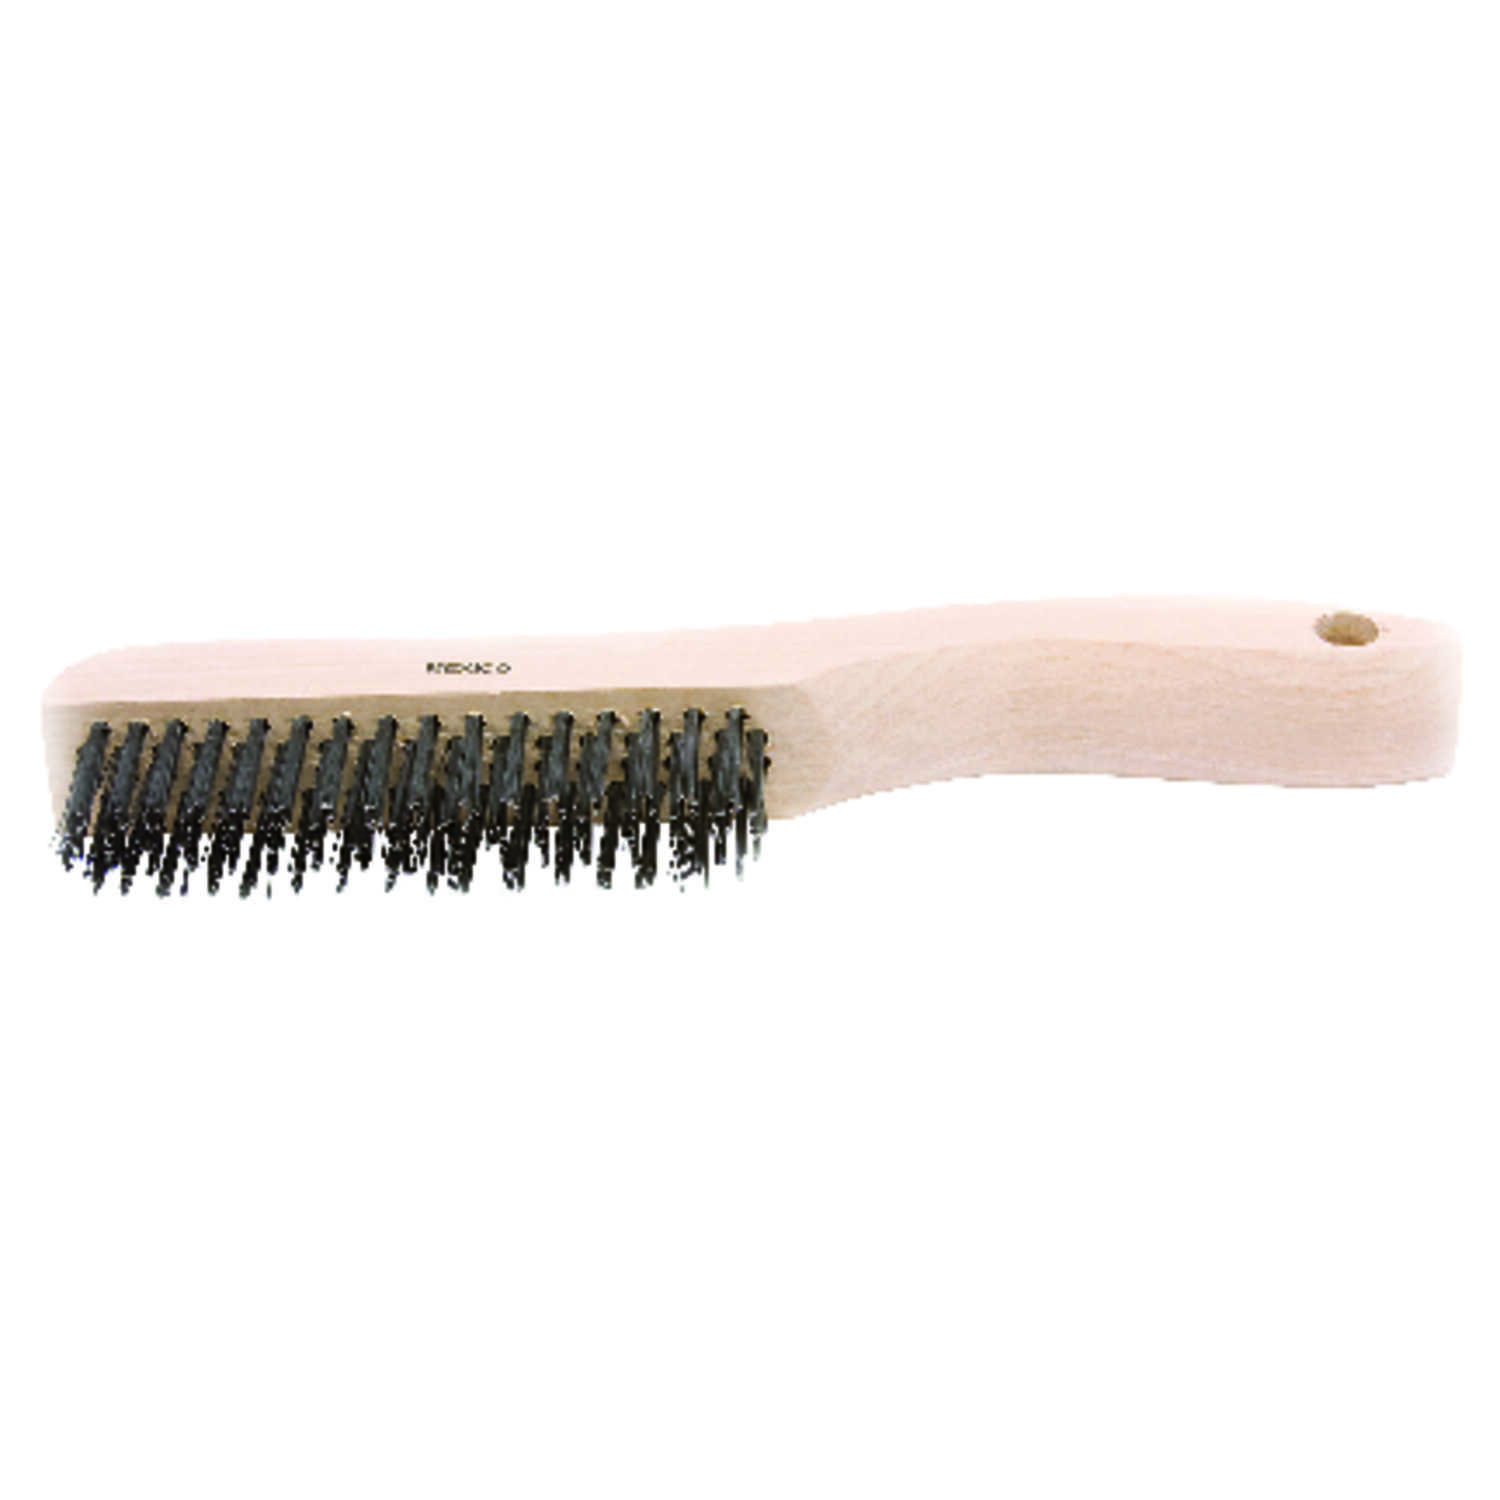 Forney  10-1/4 in. L x 2 in. W Wood  1 pc. Scratch Brush